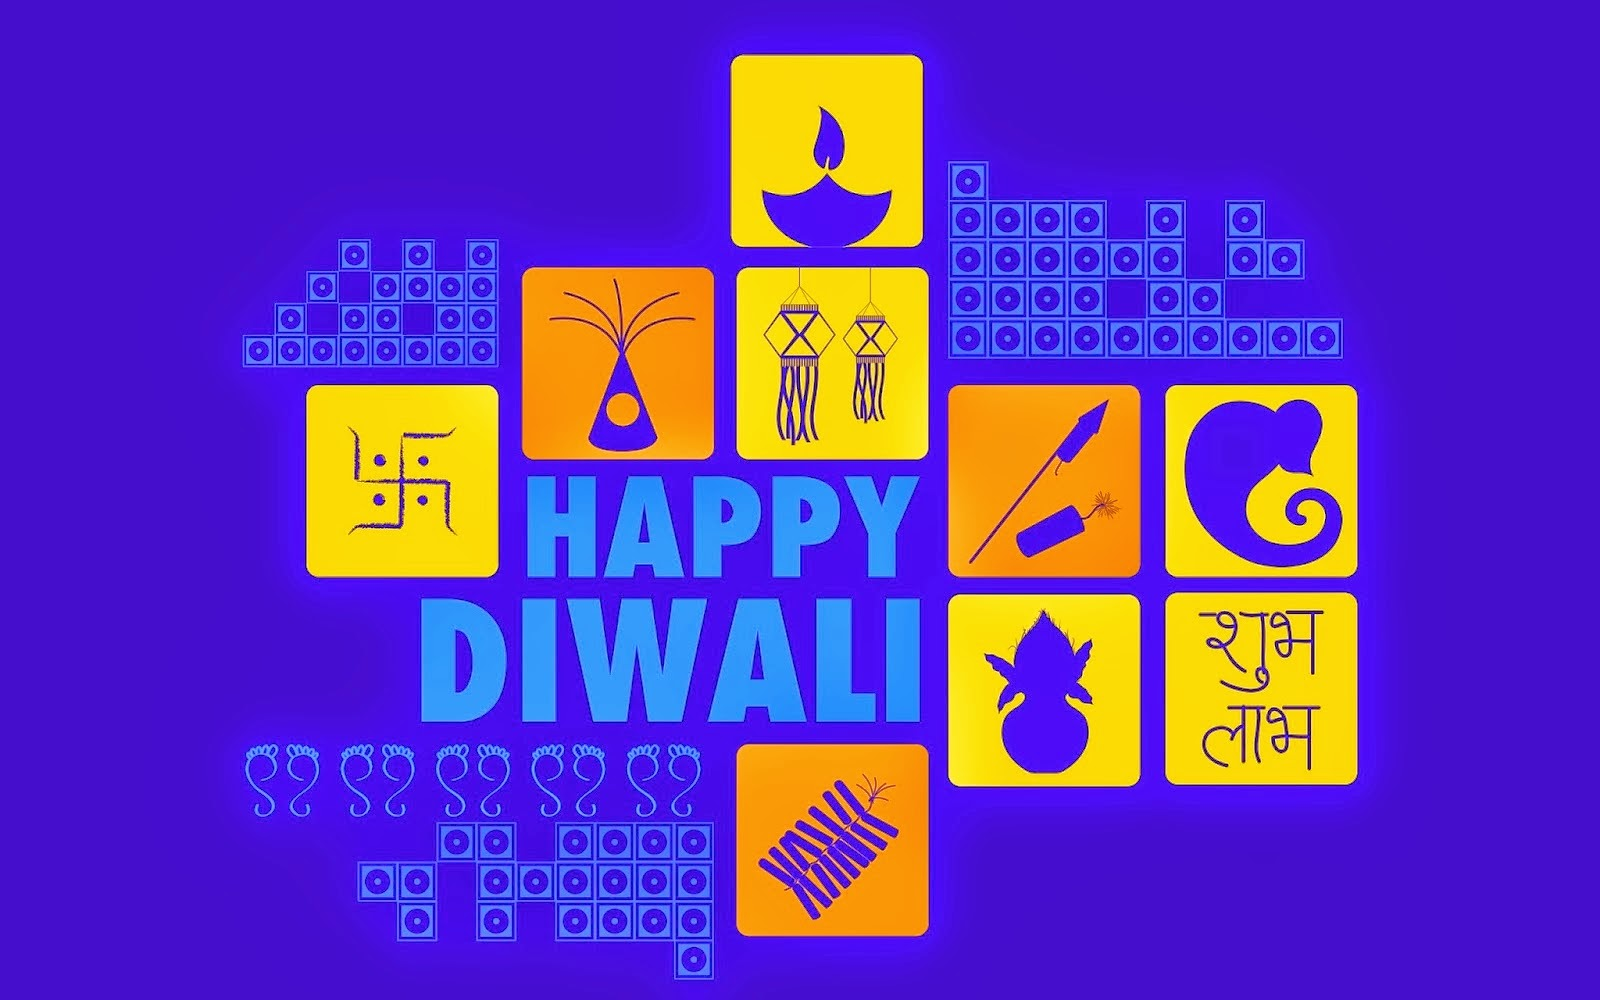 Happy Diwali Wallpapers 2014 for Desktop HD Download